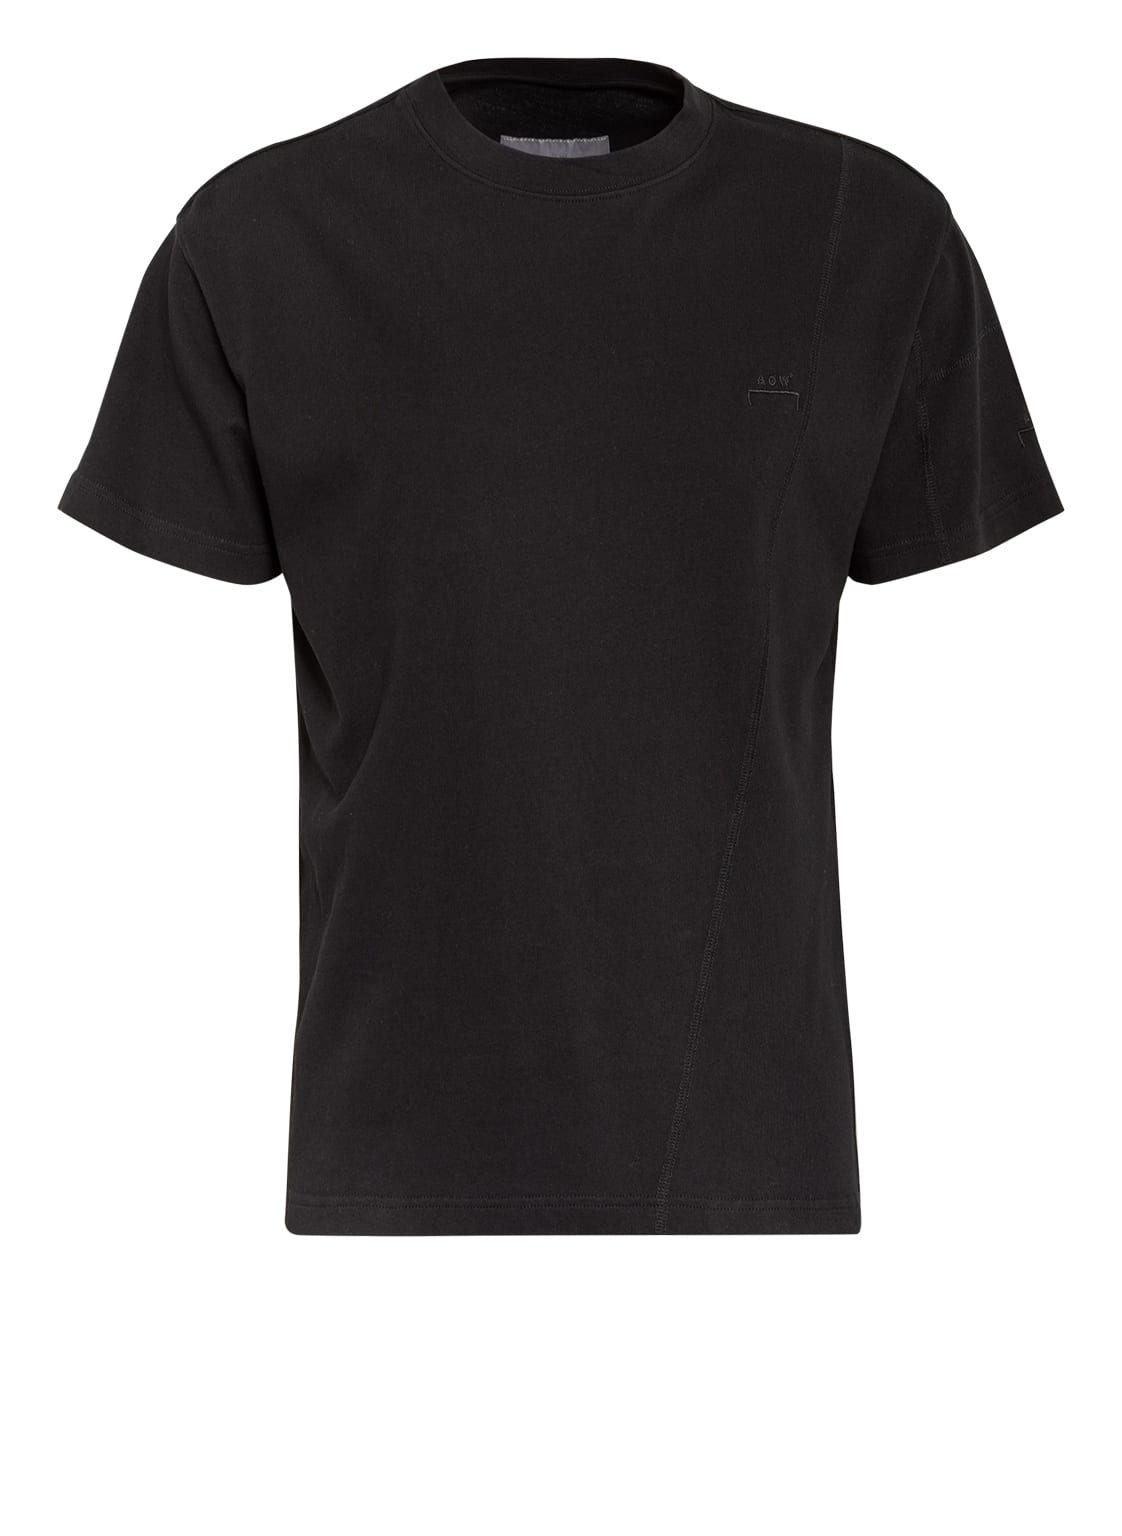 Image of A-Cold-Wall* T-Shirt schwarz